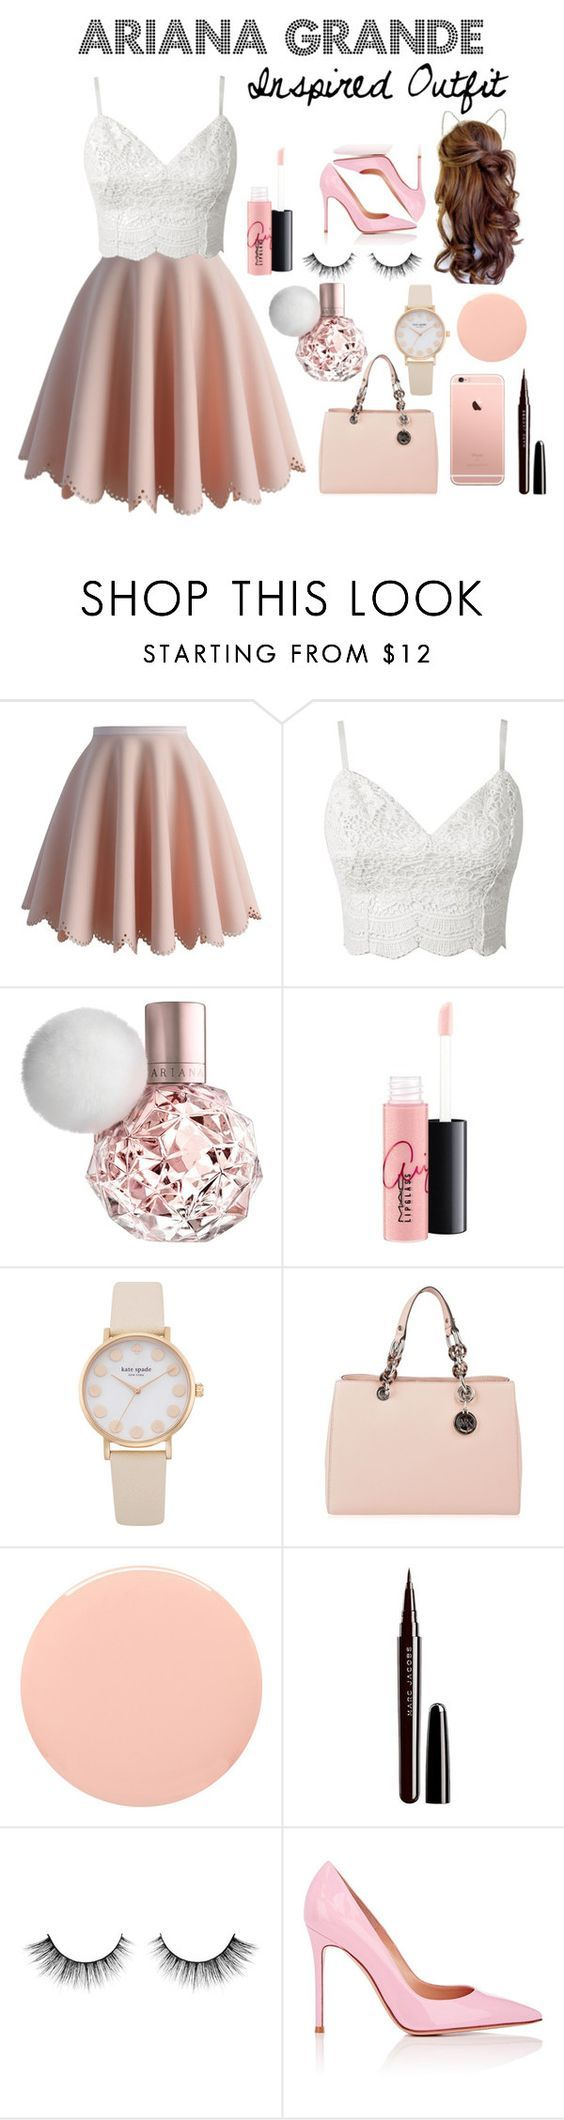 """""""Ariana Grande Inspired Outfit"""" by victoriafiocco ❤ liked on Polyvore featuring Chicwish, MAC Cosmetics, MICHAEL Michael Kors, Smith & Cult, Marc Jacobs, Gianvito Rossi, women's clothing, women, female and woman:"""